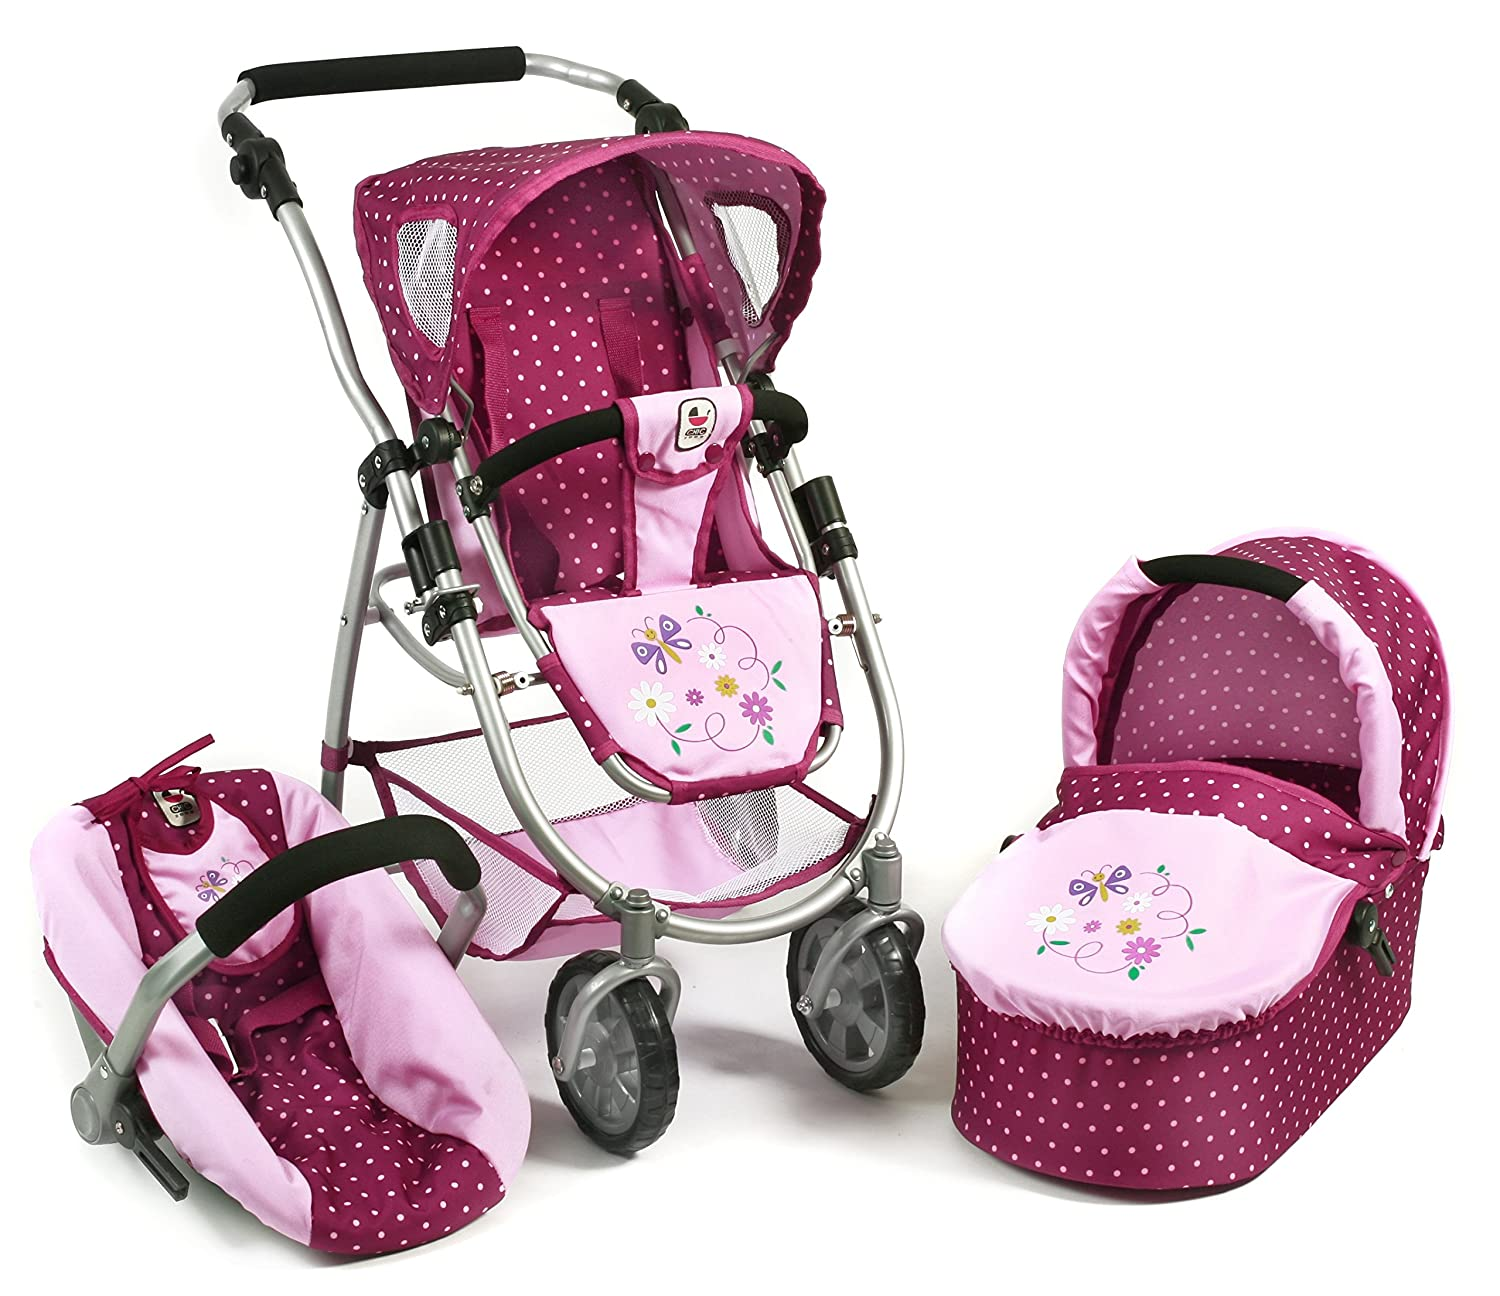 Bayer Chic 2000 637 29 29 637 - 3 in 1 Kombi Emotion All In, Dots Brombeere, lila/rosa a85c7f